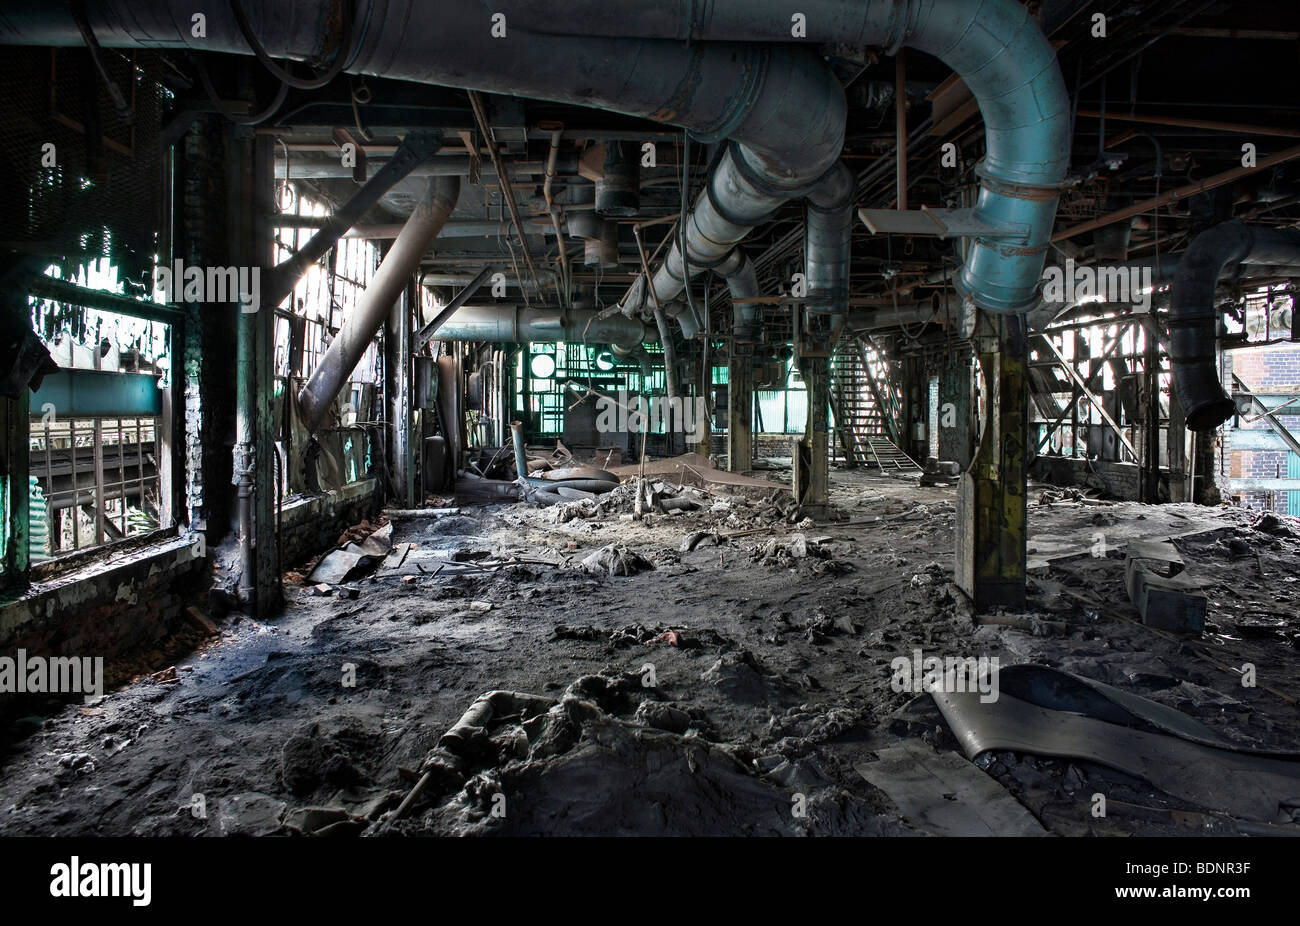 Interior view of a derelict factory - Stock Image